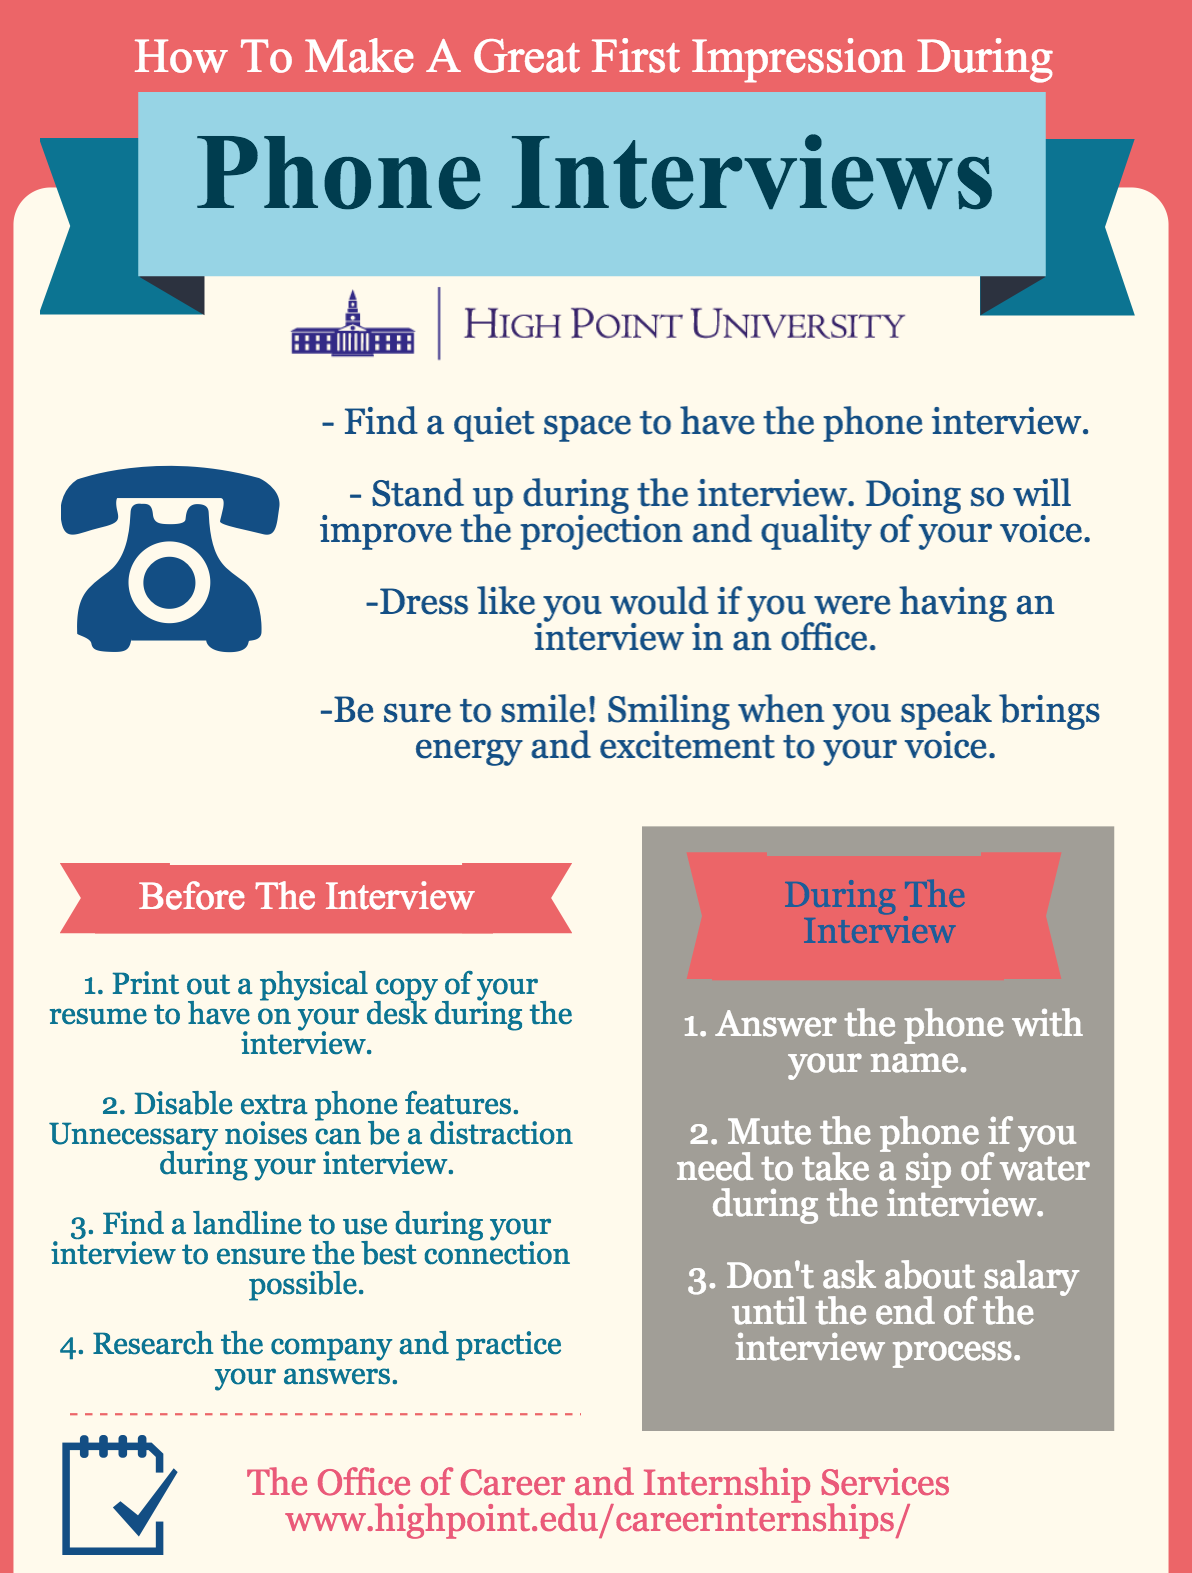 How To Make A Great First Impression During Phone Interviews!!